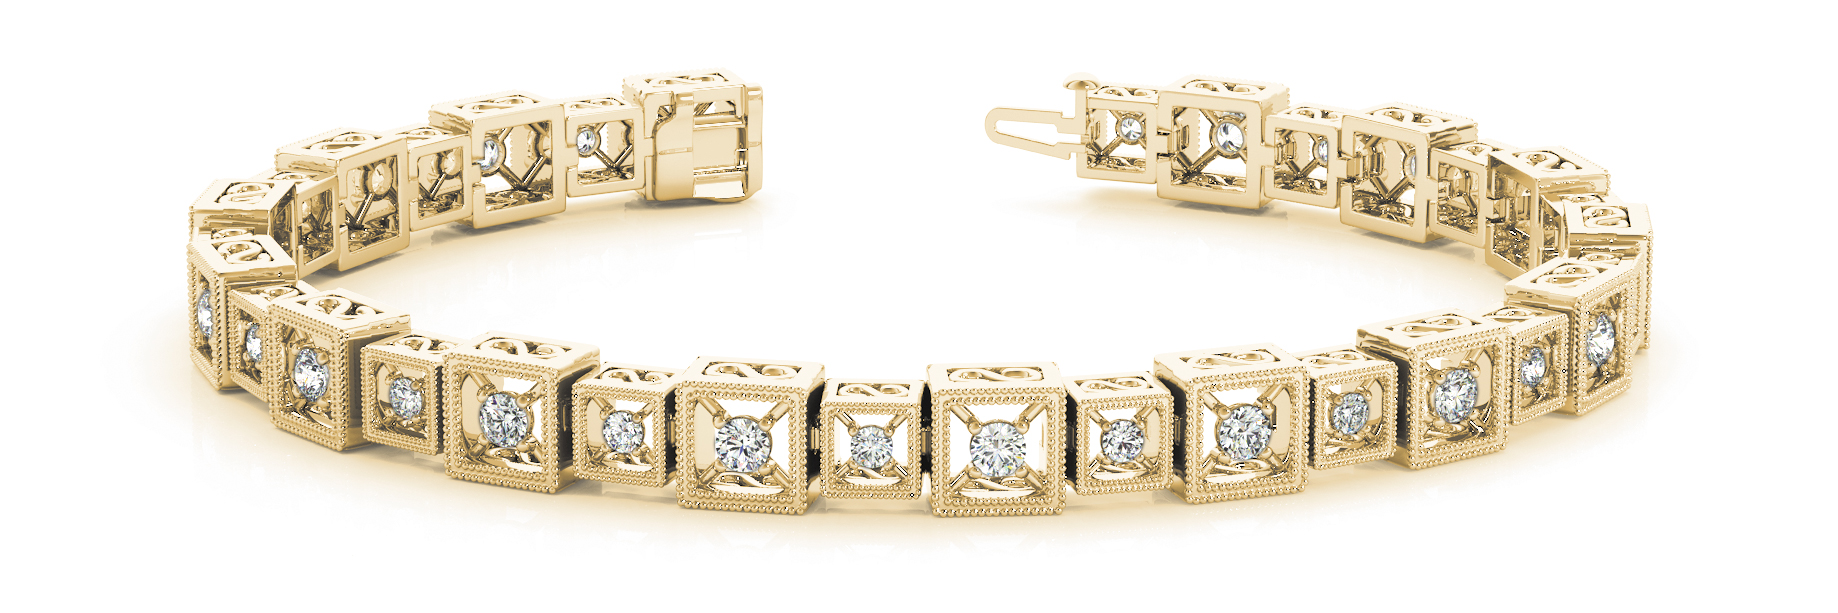 1.92 Carat Round Diamond Square Filigree Yellow Gold Bracelet